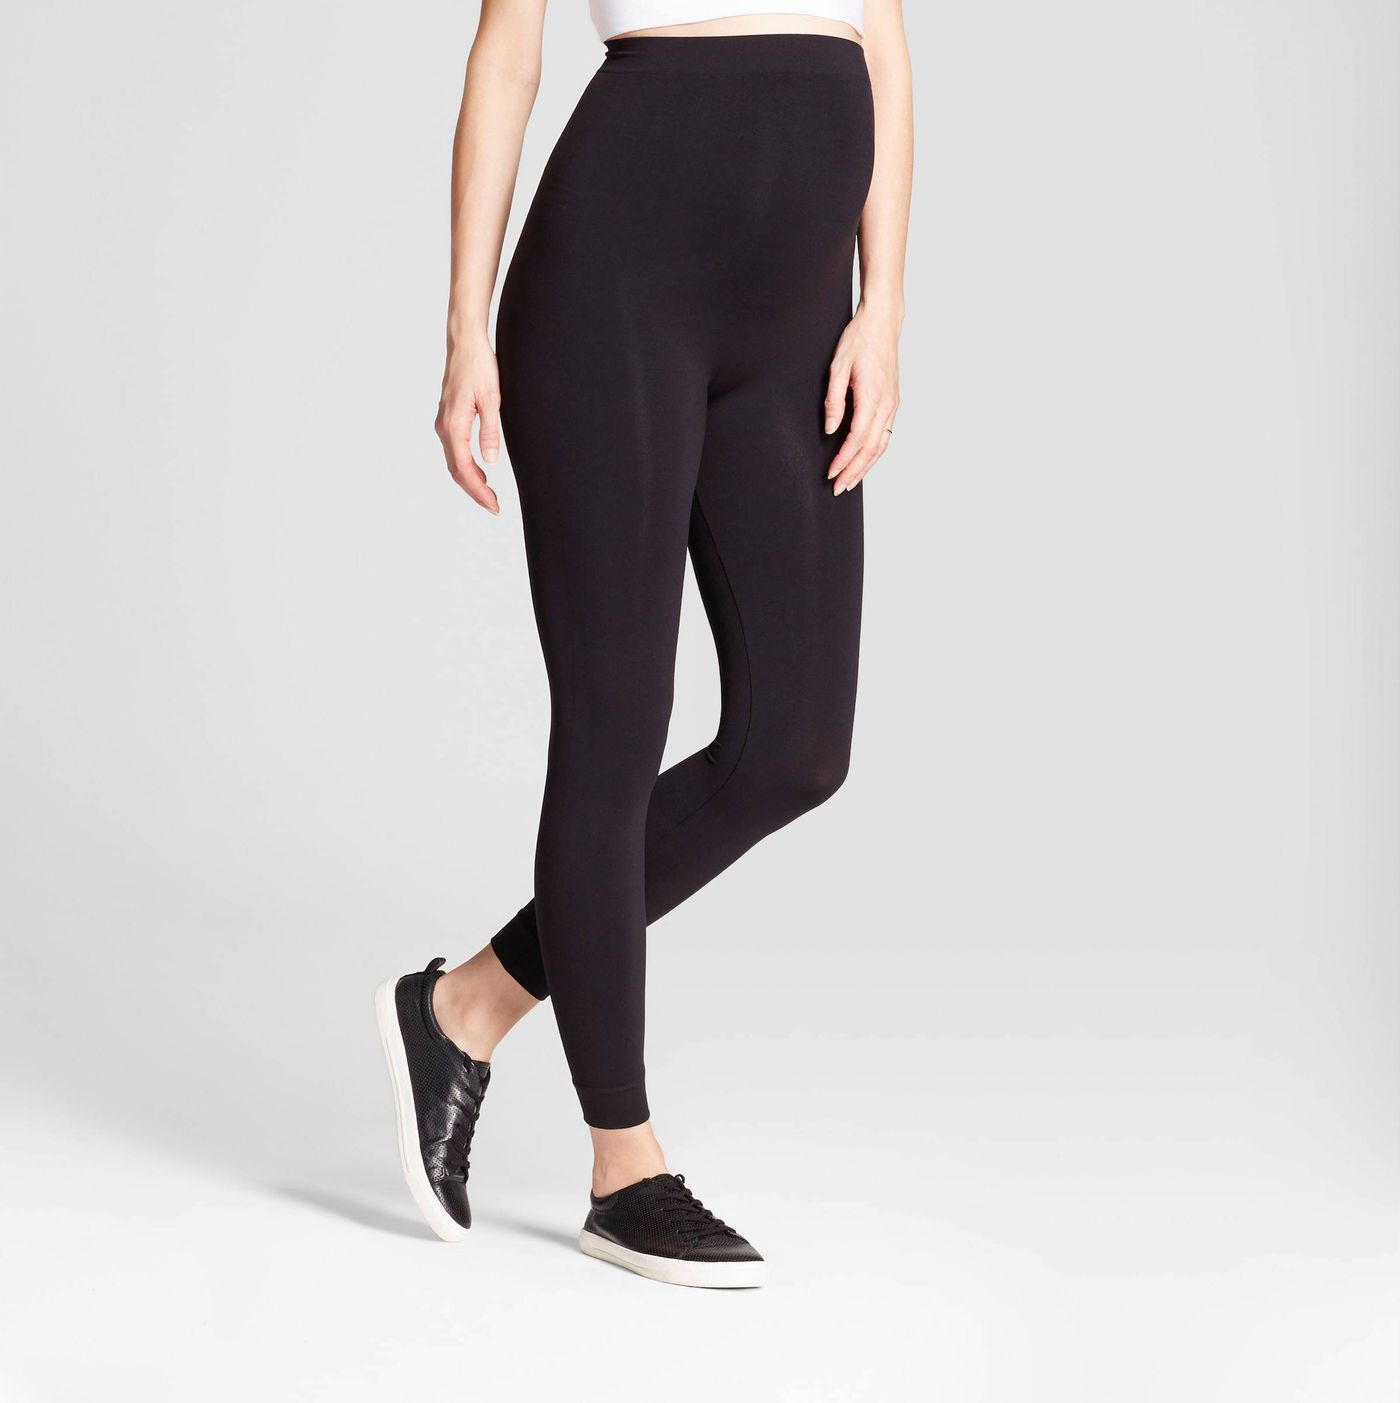 Target S New Maternity Clothes Look Nothing Like Maternity Clothes Racked